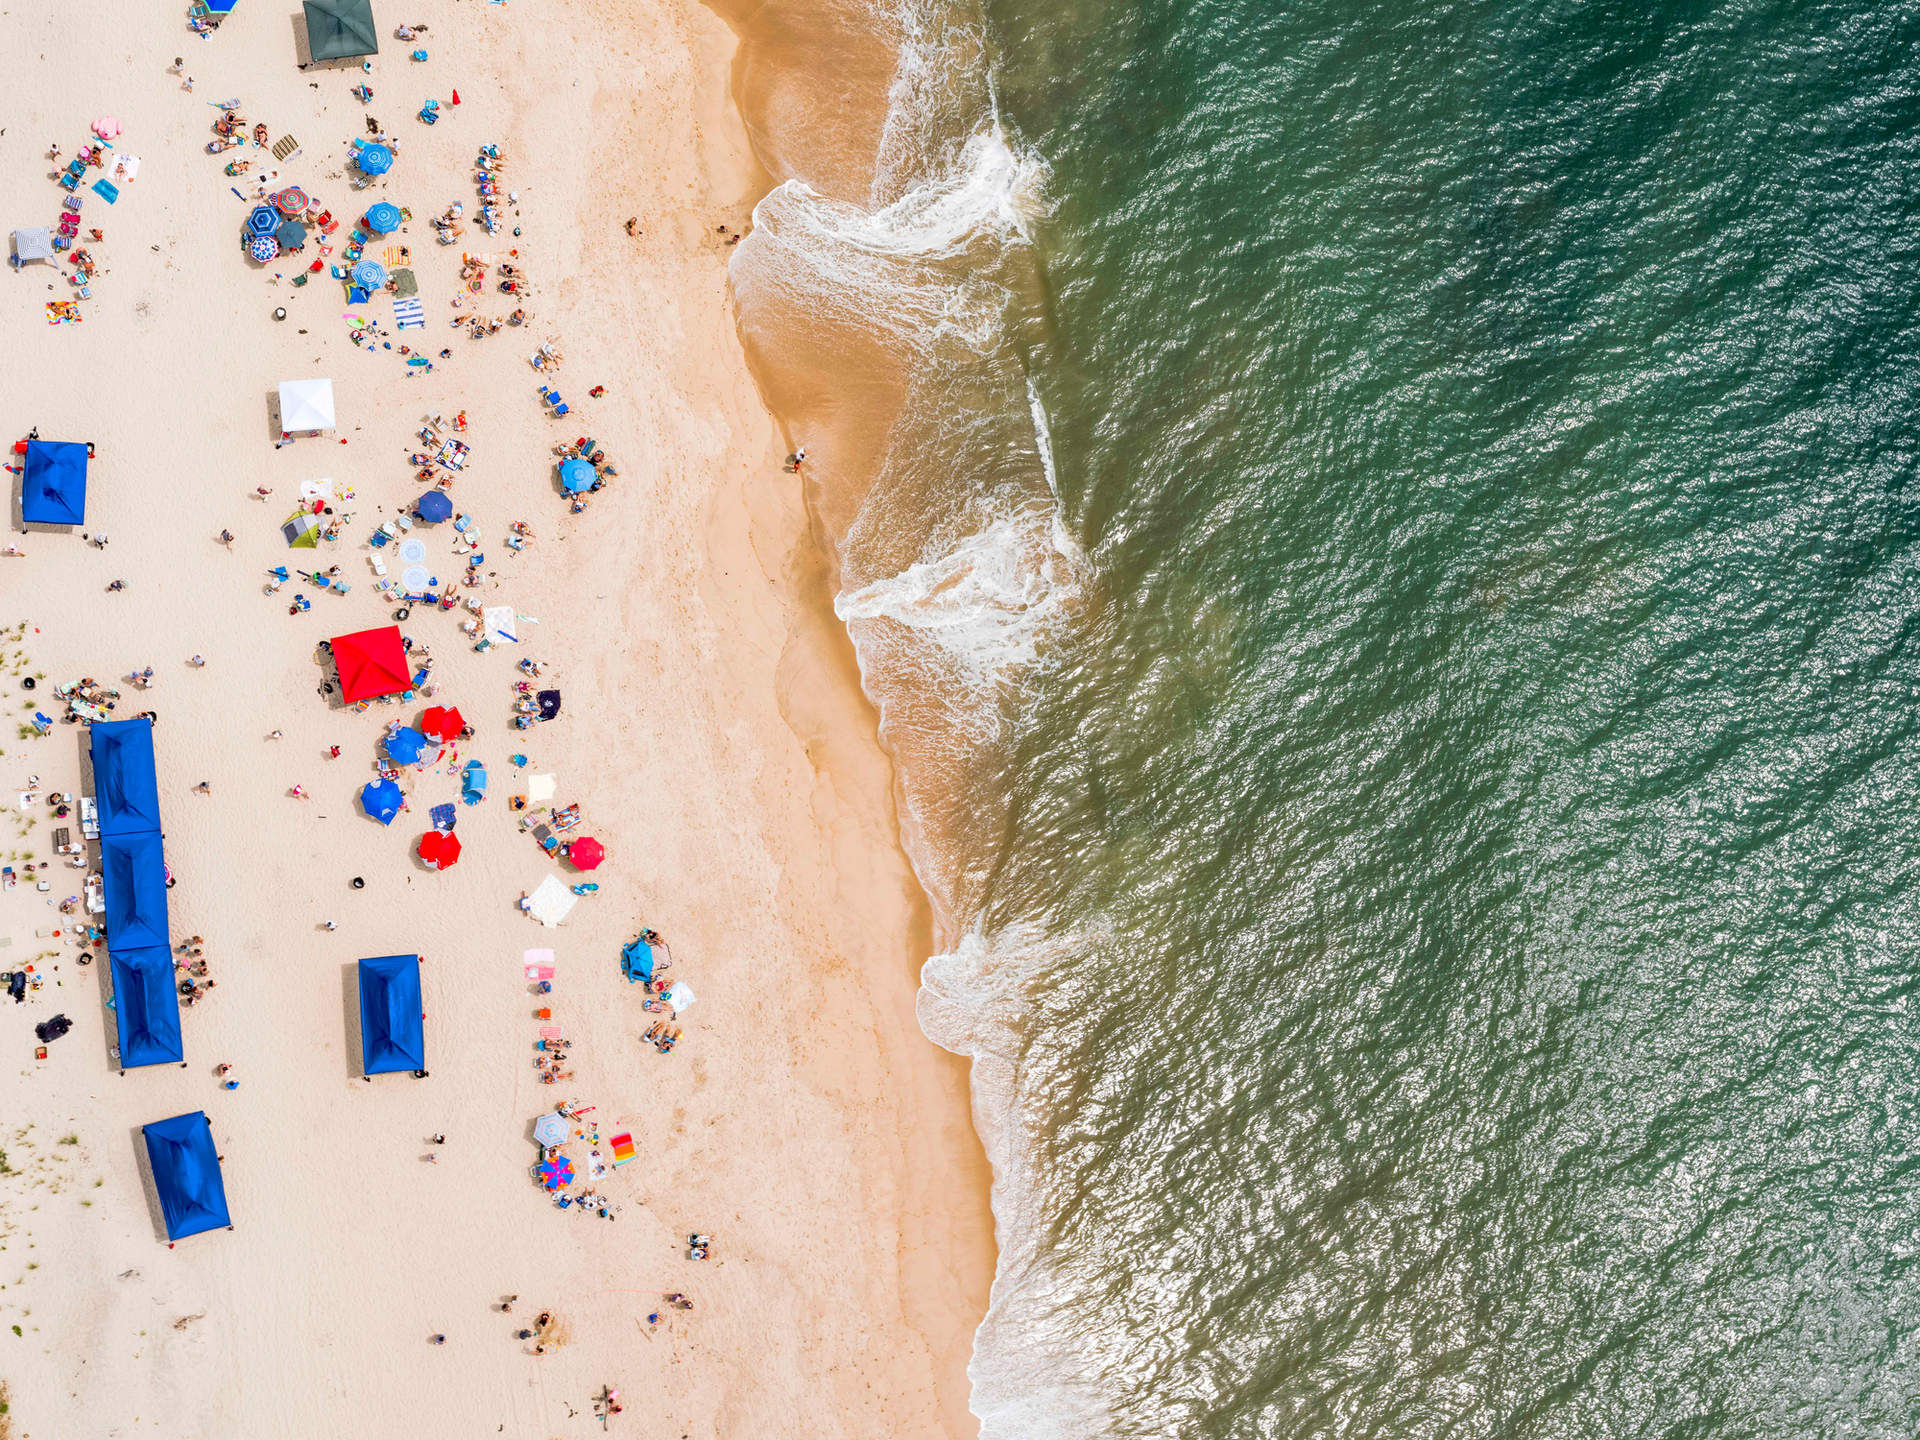 'Amagansett Umbrellas' at Atlantic beach